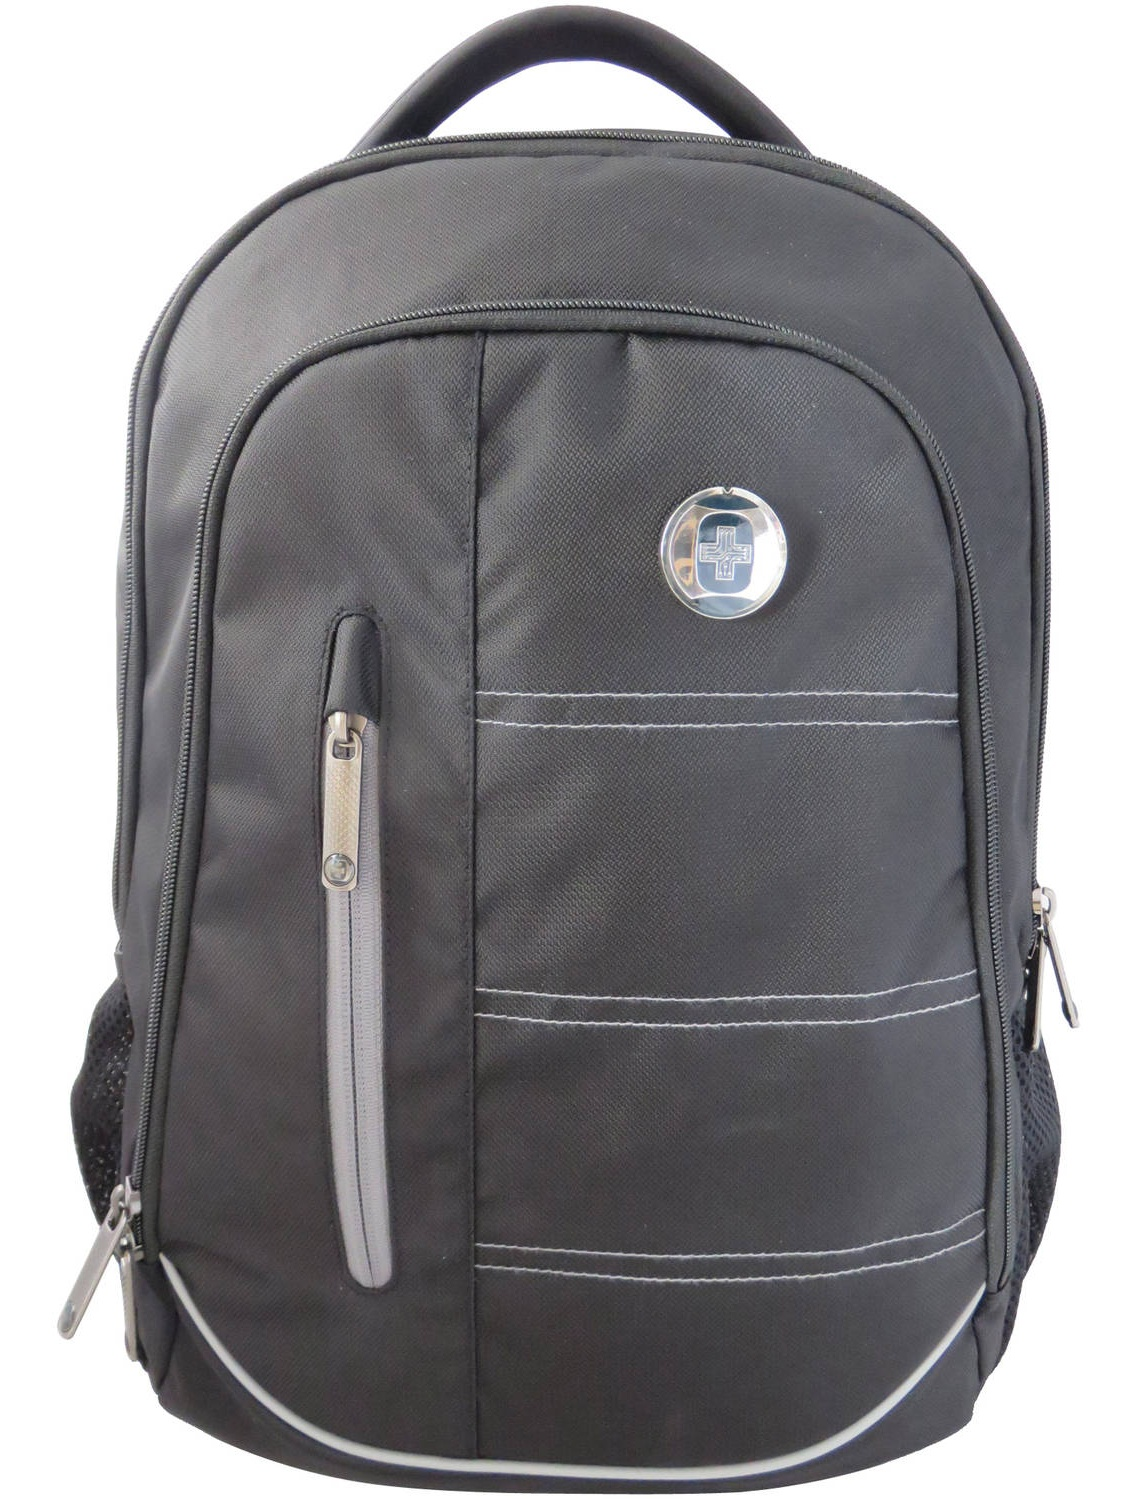 Swissdigital Mainframe Travel Business Backpack